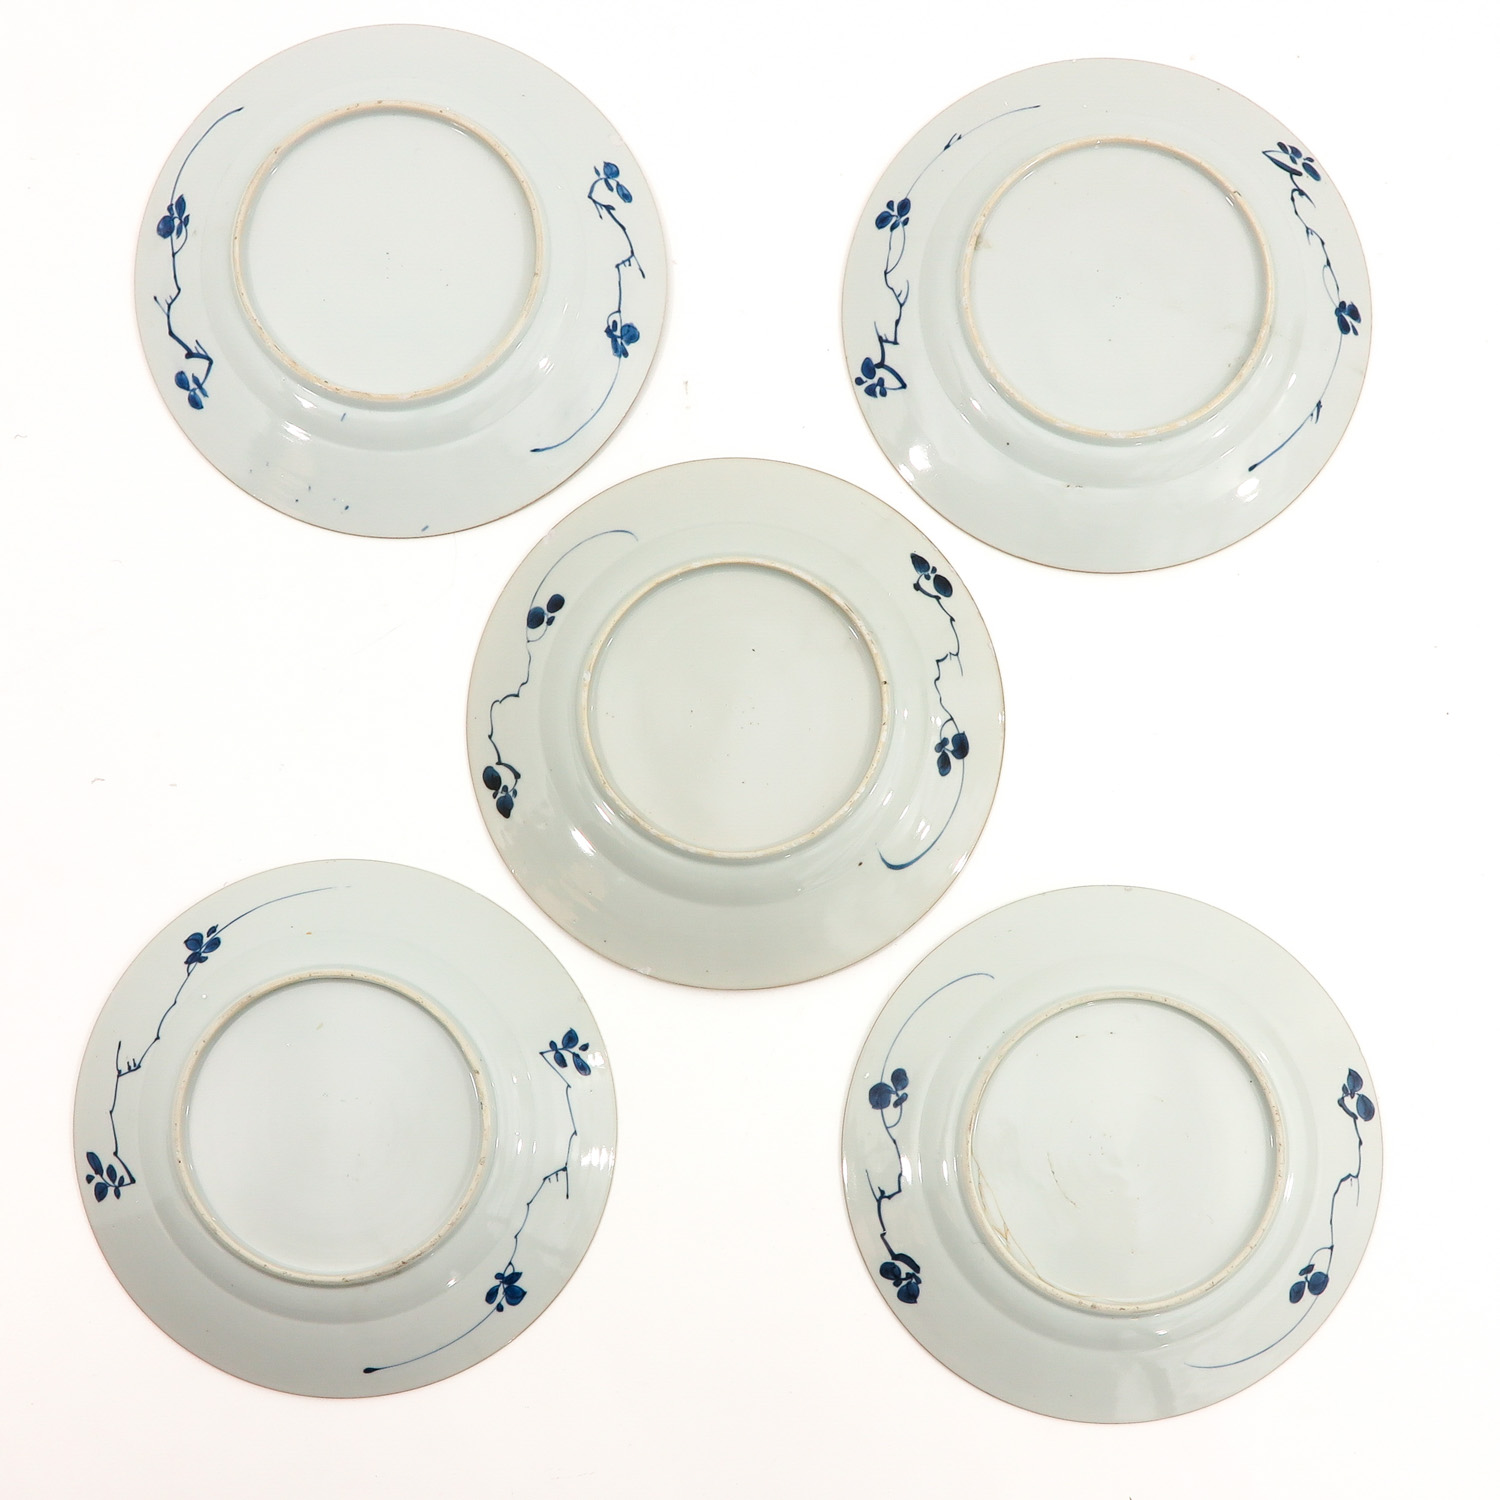 A Series of 5 Blue and White Plates - Image 2 of 10